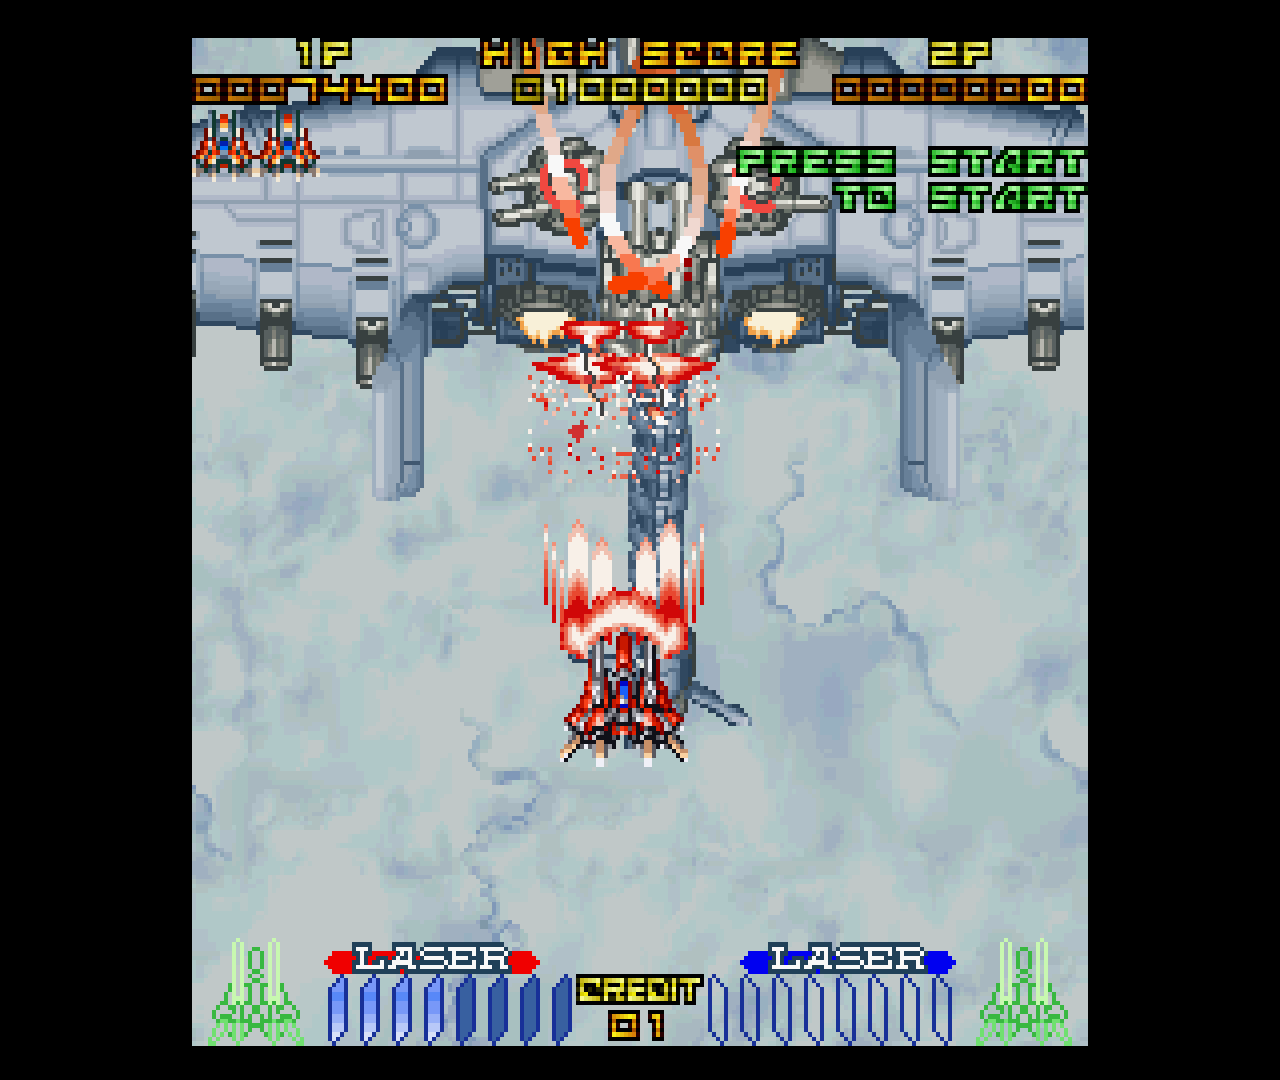 Figure 2 - Boss fights in Galactic Attack are challenging, but fun